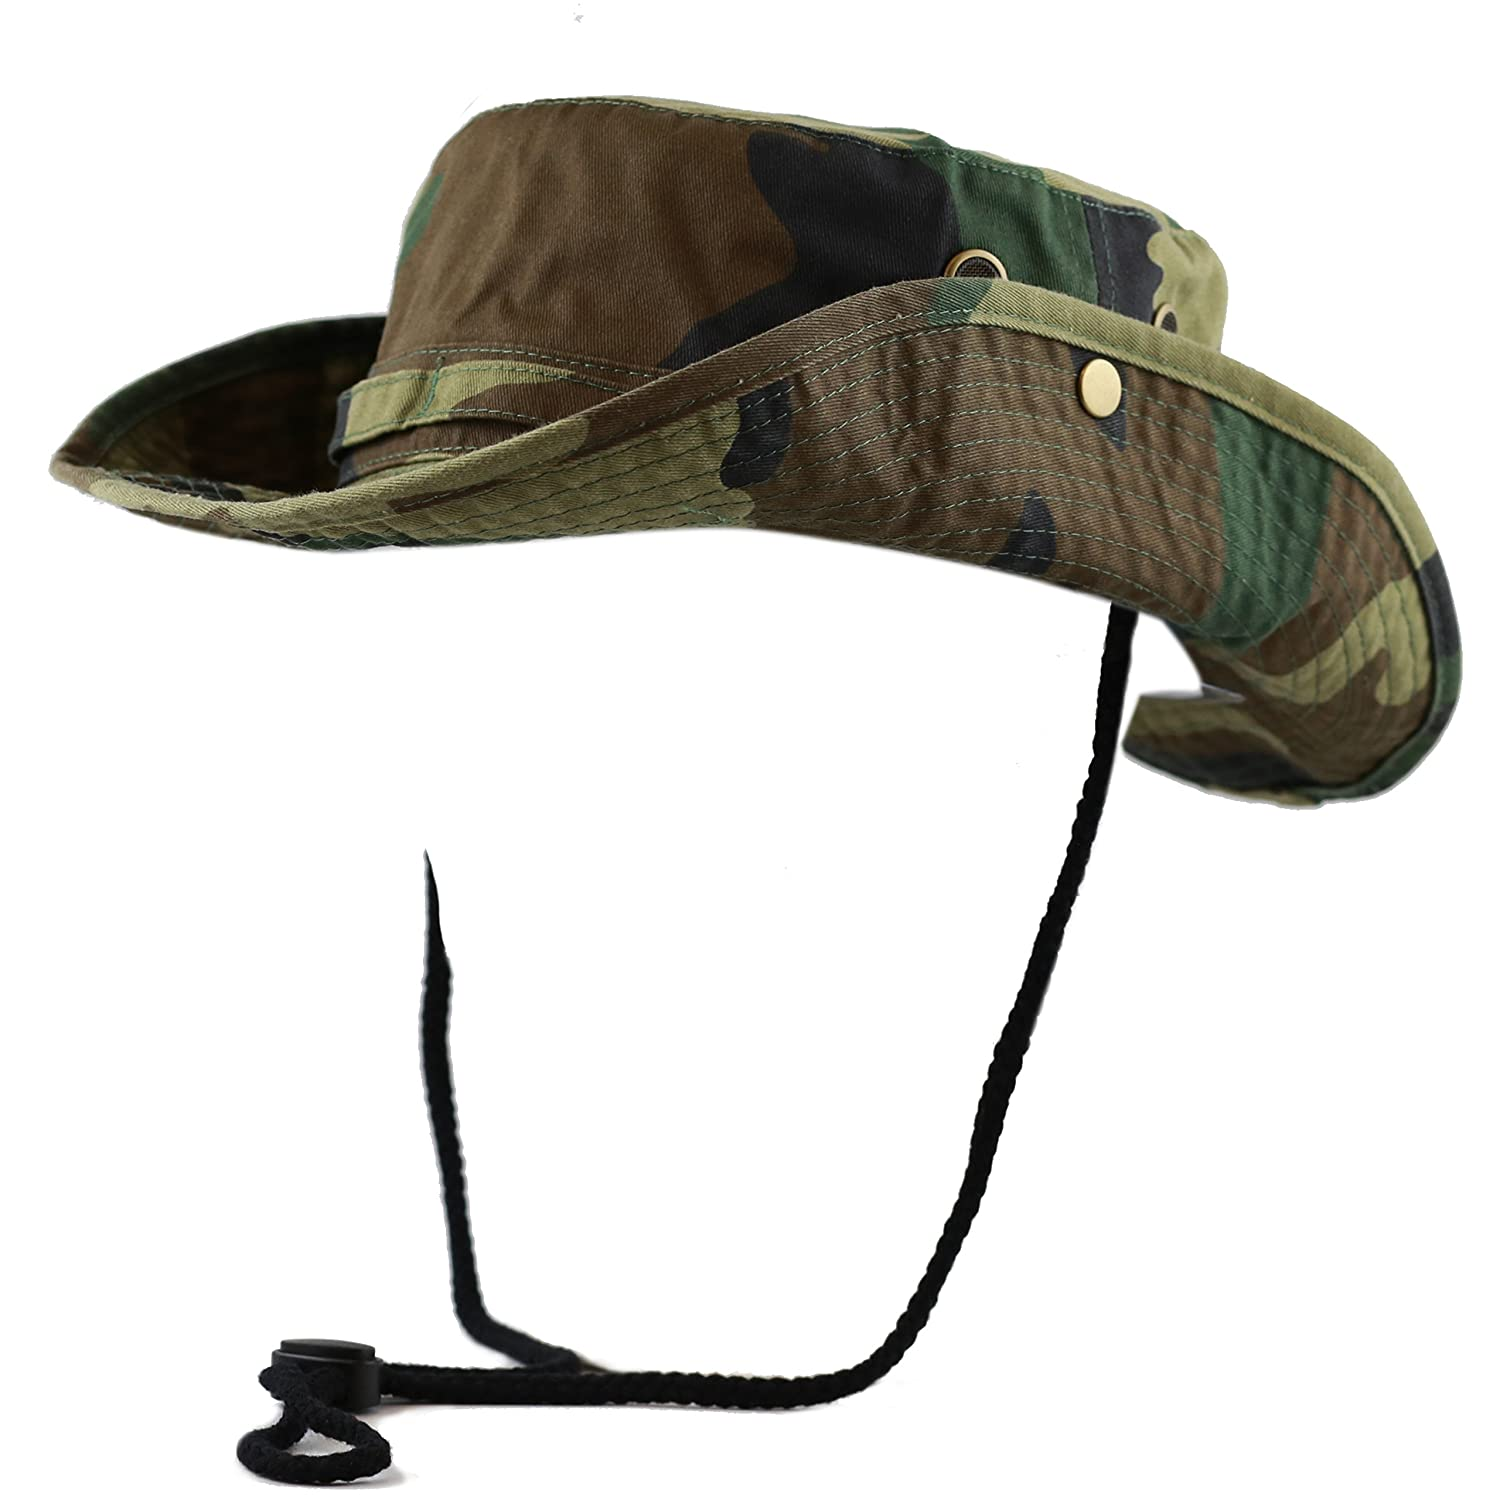 THE HAT DEPOT 100/% Cotton Stone-Washed Safari Wide Brim Foldable Double-Sided Sun Boonie Bucket Hat